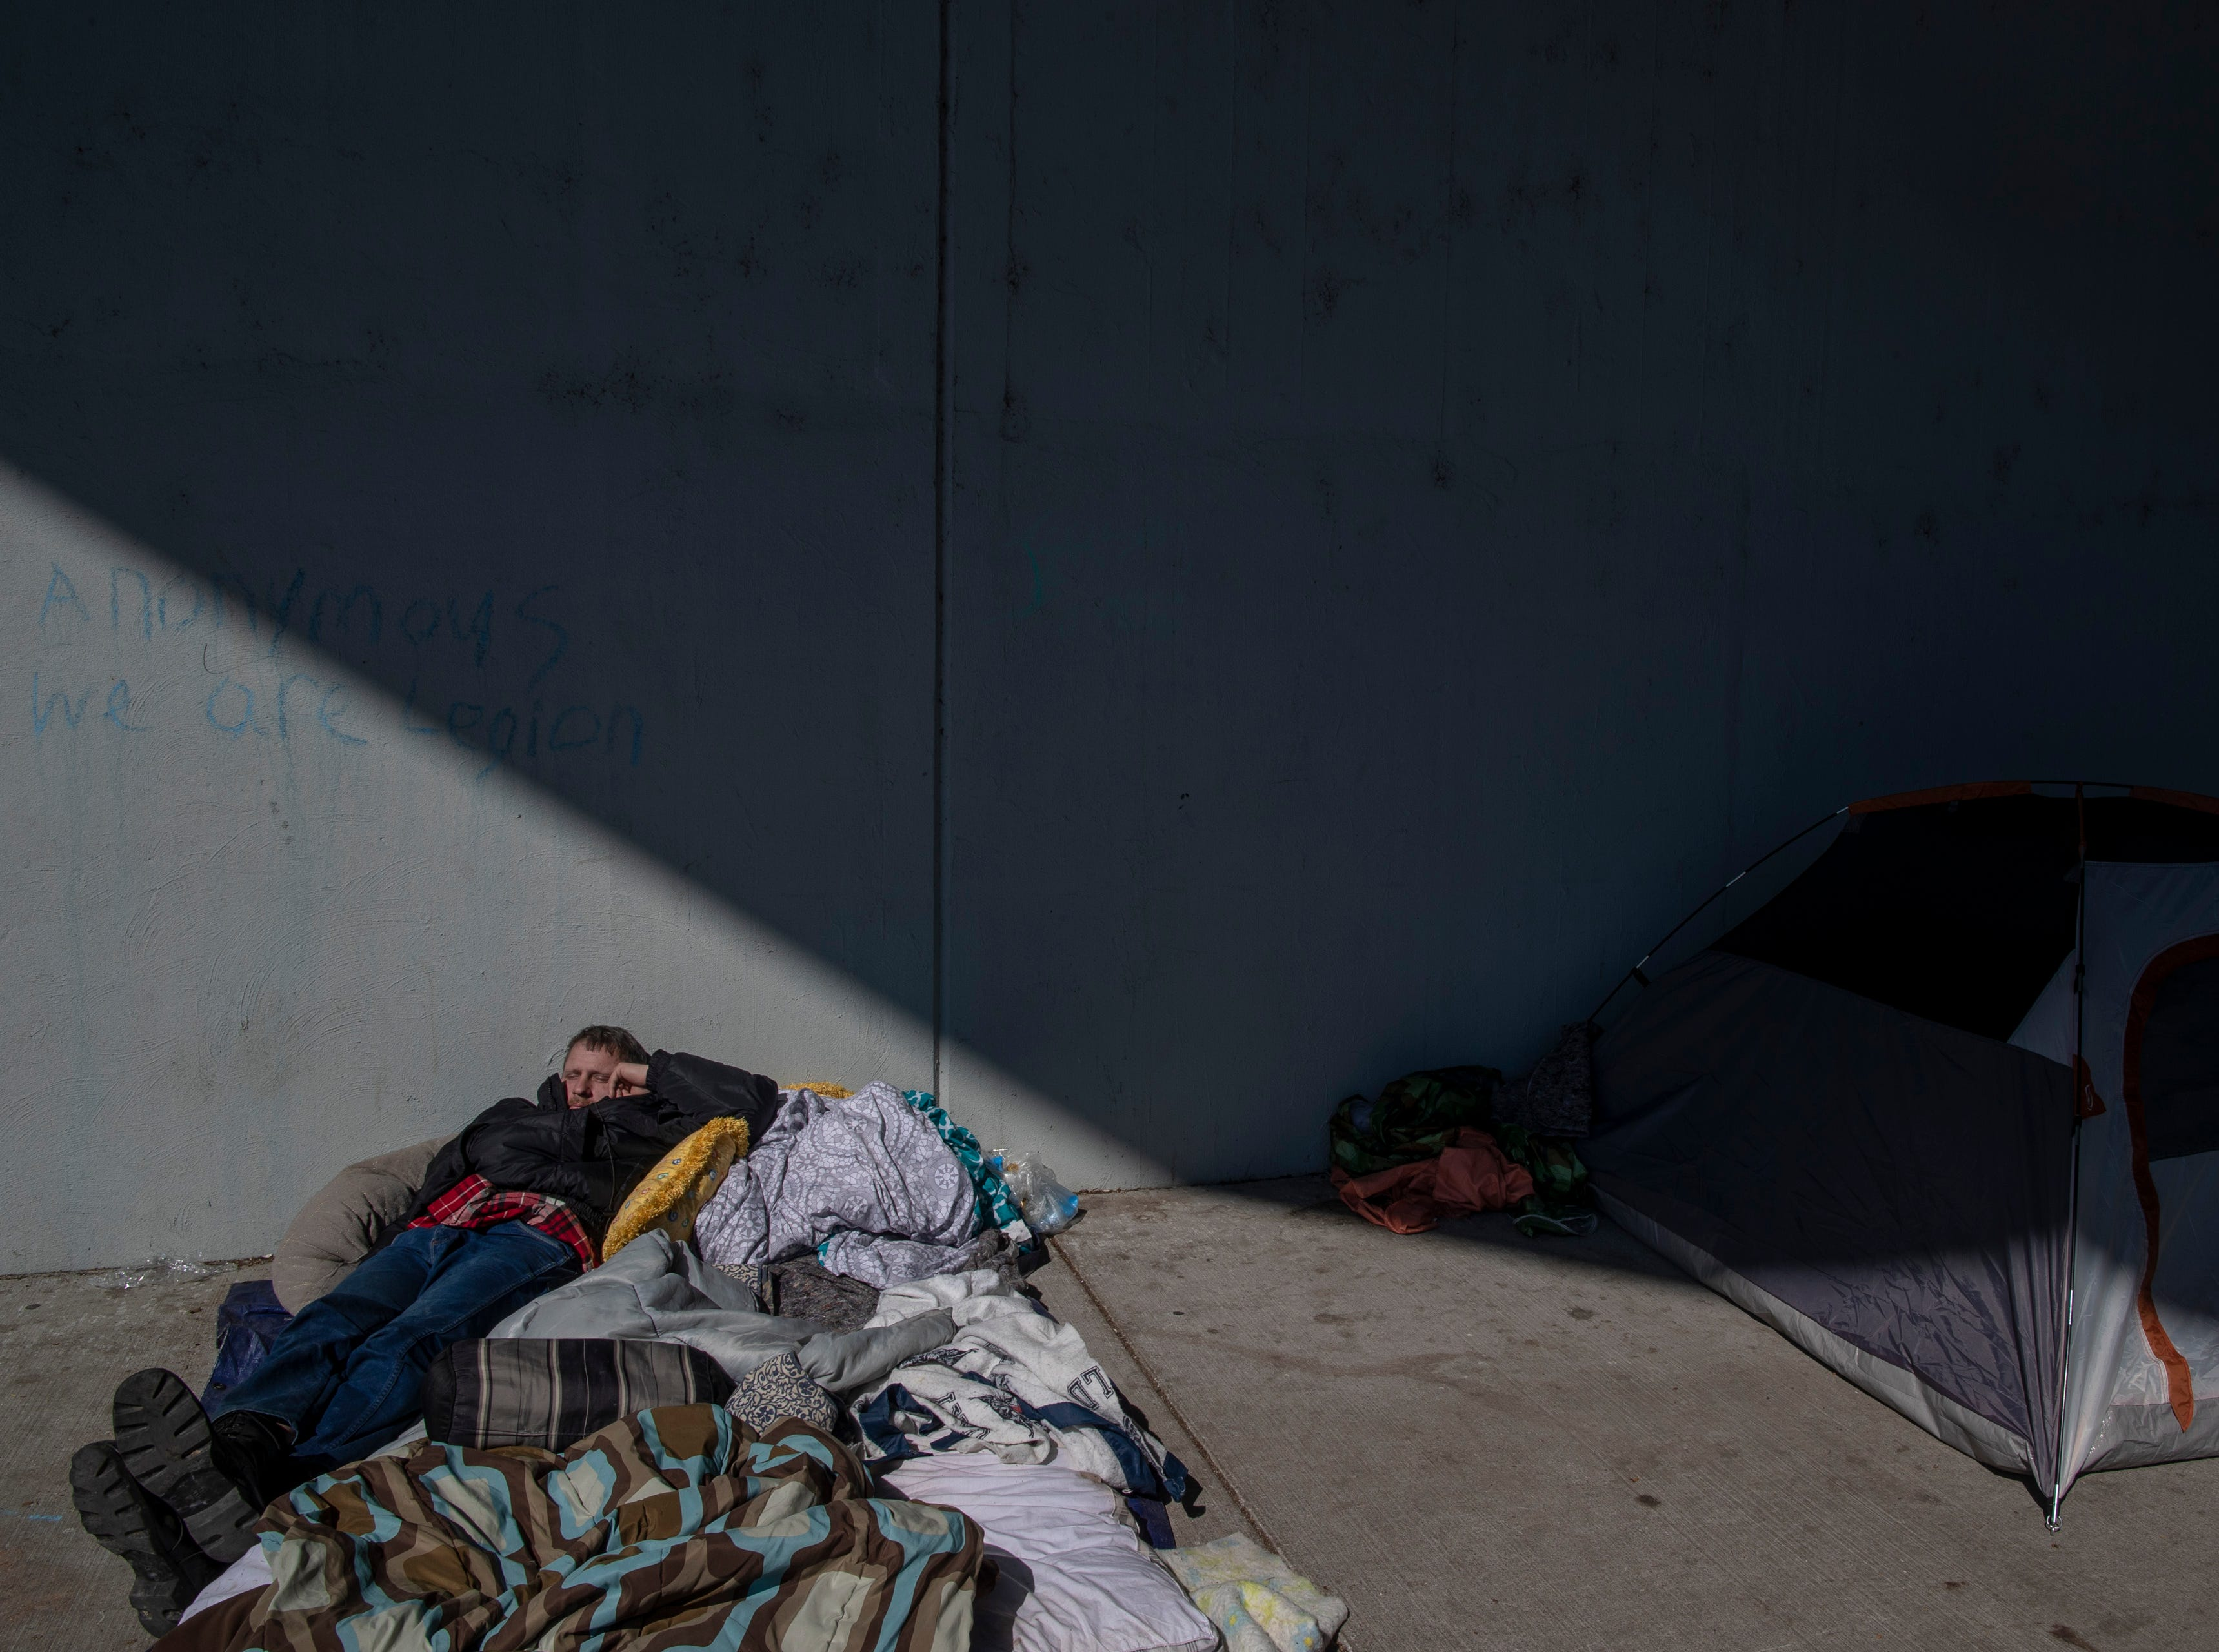 Brian Hall takes a nap at the homeless camp area under the bypasses along East Jefferson Street and Jackson Street in downtown Louisville. March 18, 2019